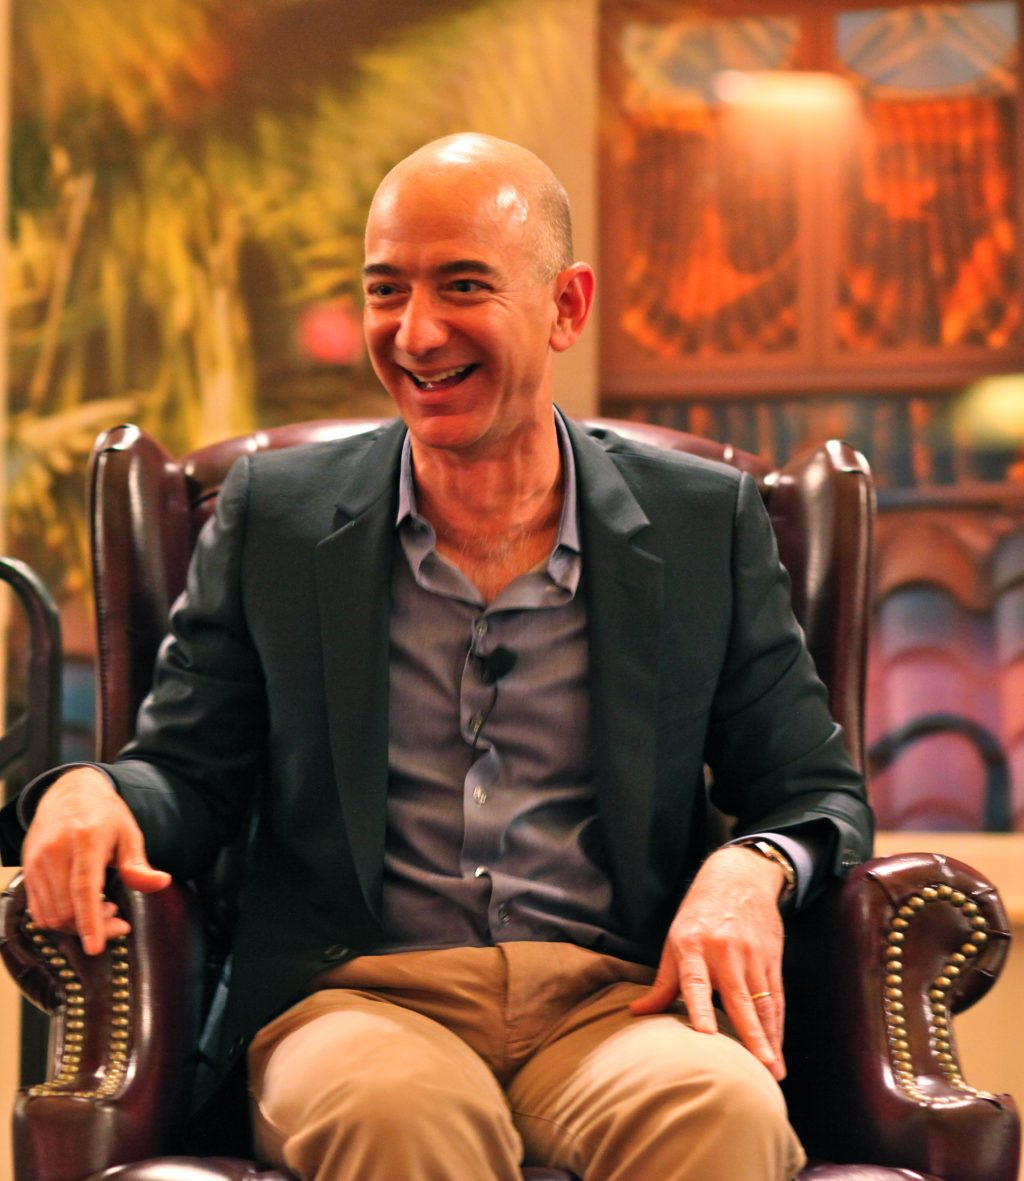 Jeff_Bezos'_iconic_laugh